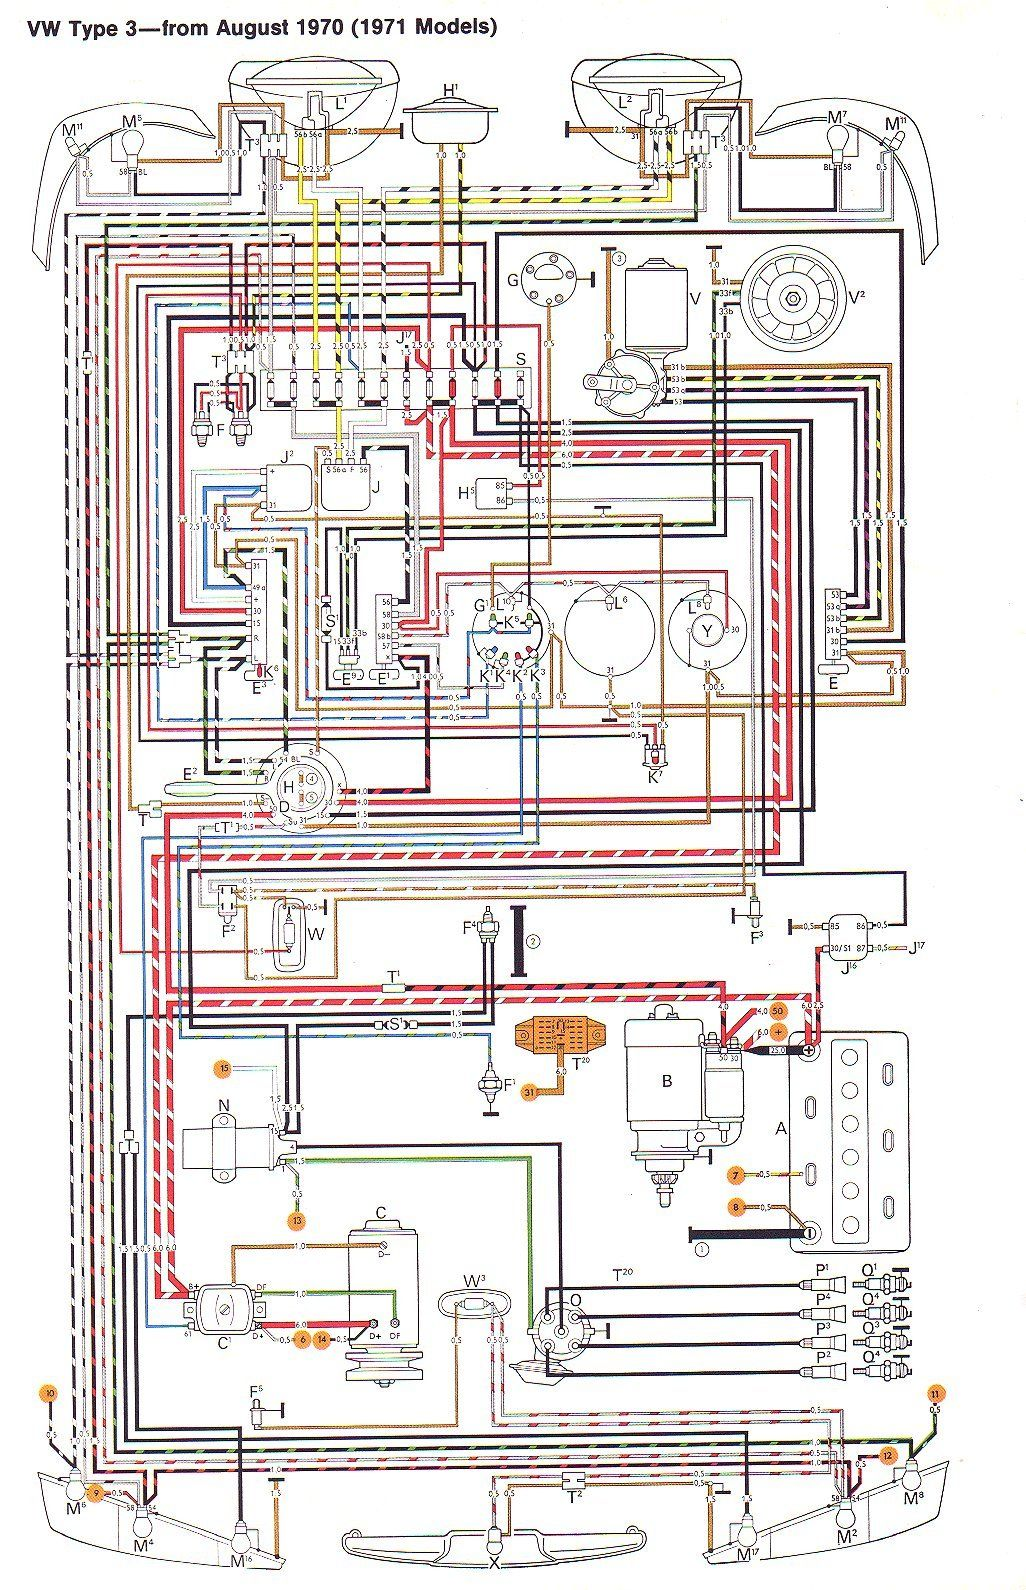 1968 volkswagen wiring diagram wiring diagrams konsultwiring diagram for volkswagen van wiring diagram centre 1968 vw [ 1026 x 1590 Pixel ]